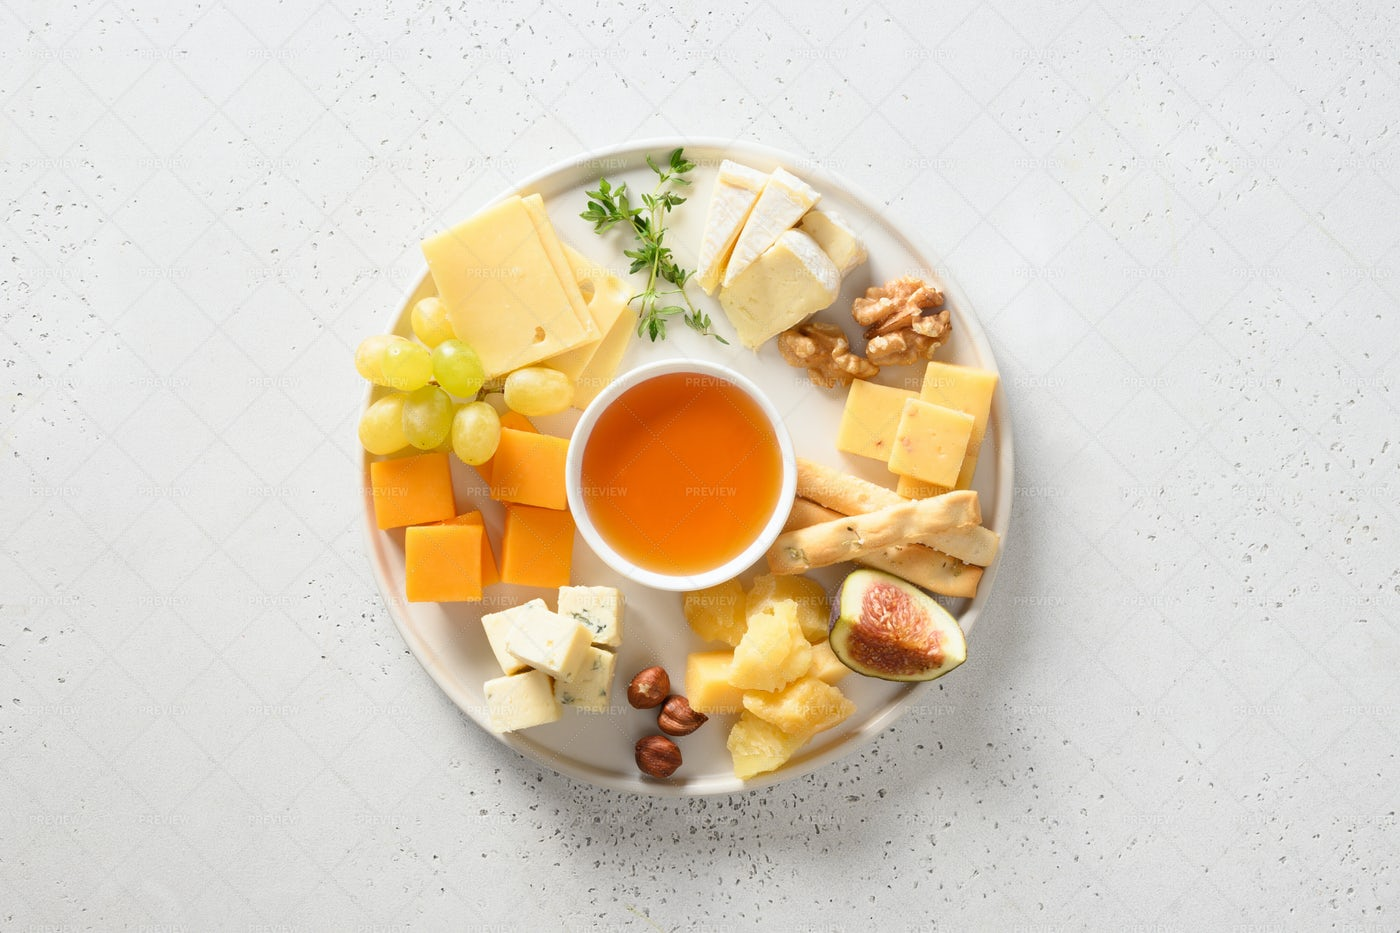 Cheese Platter With Grapes: Stock Photos